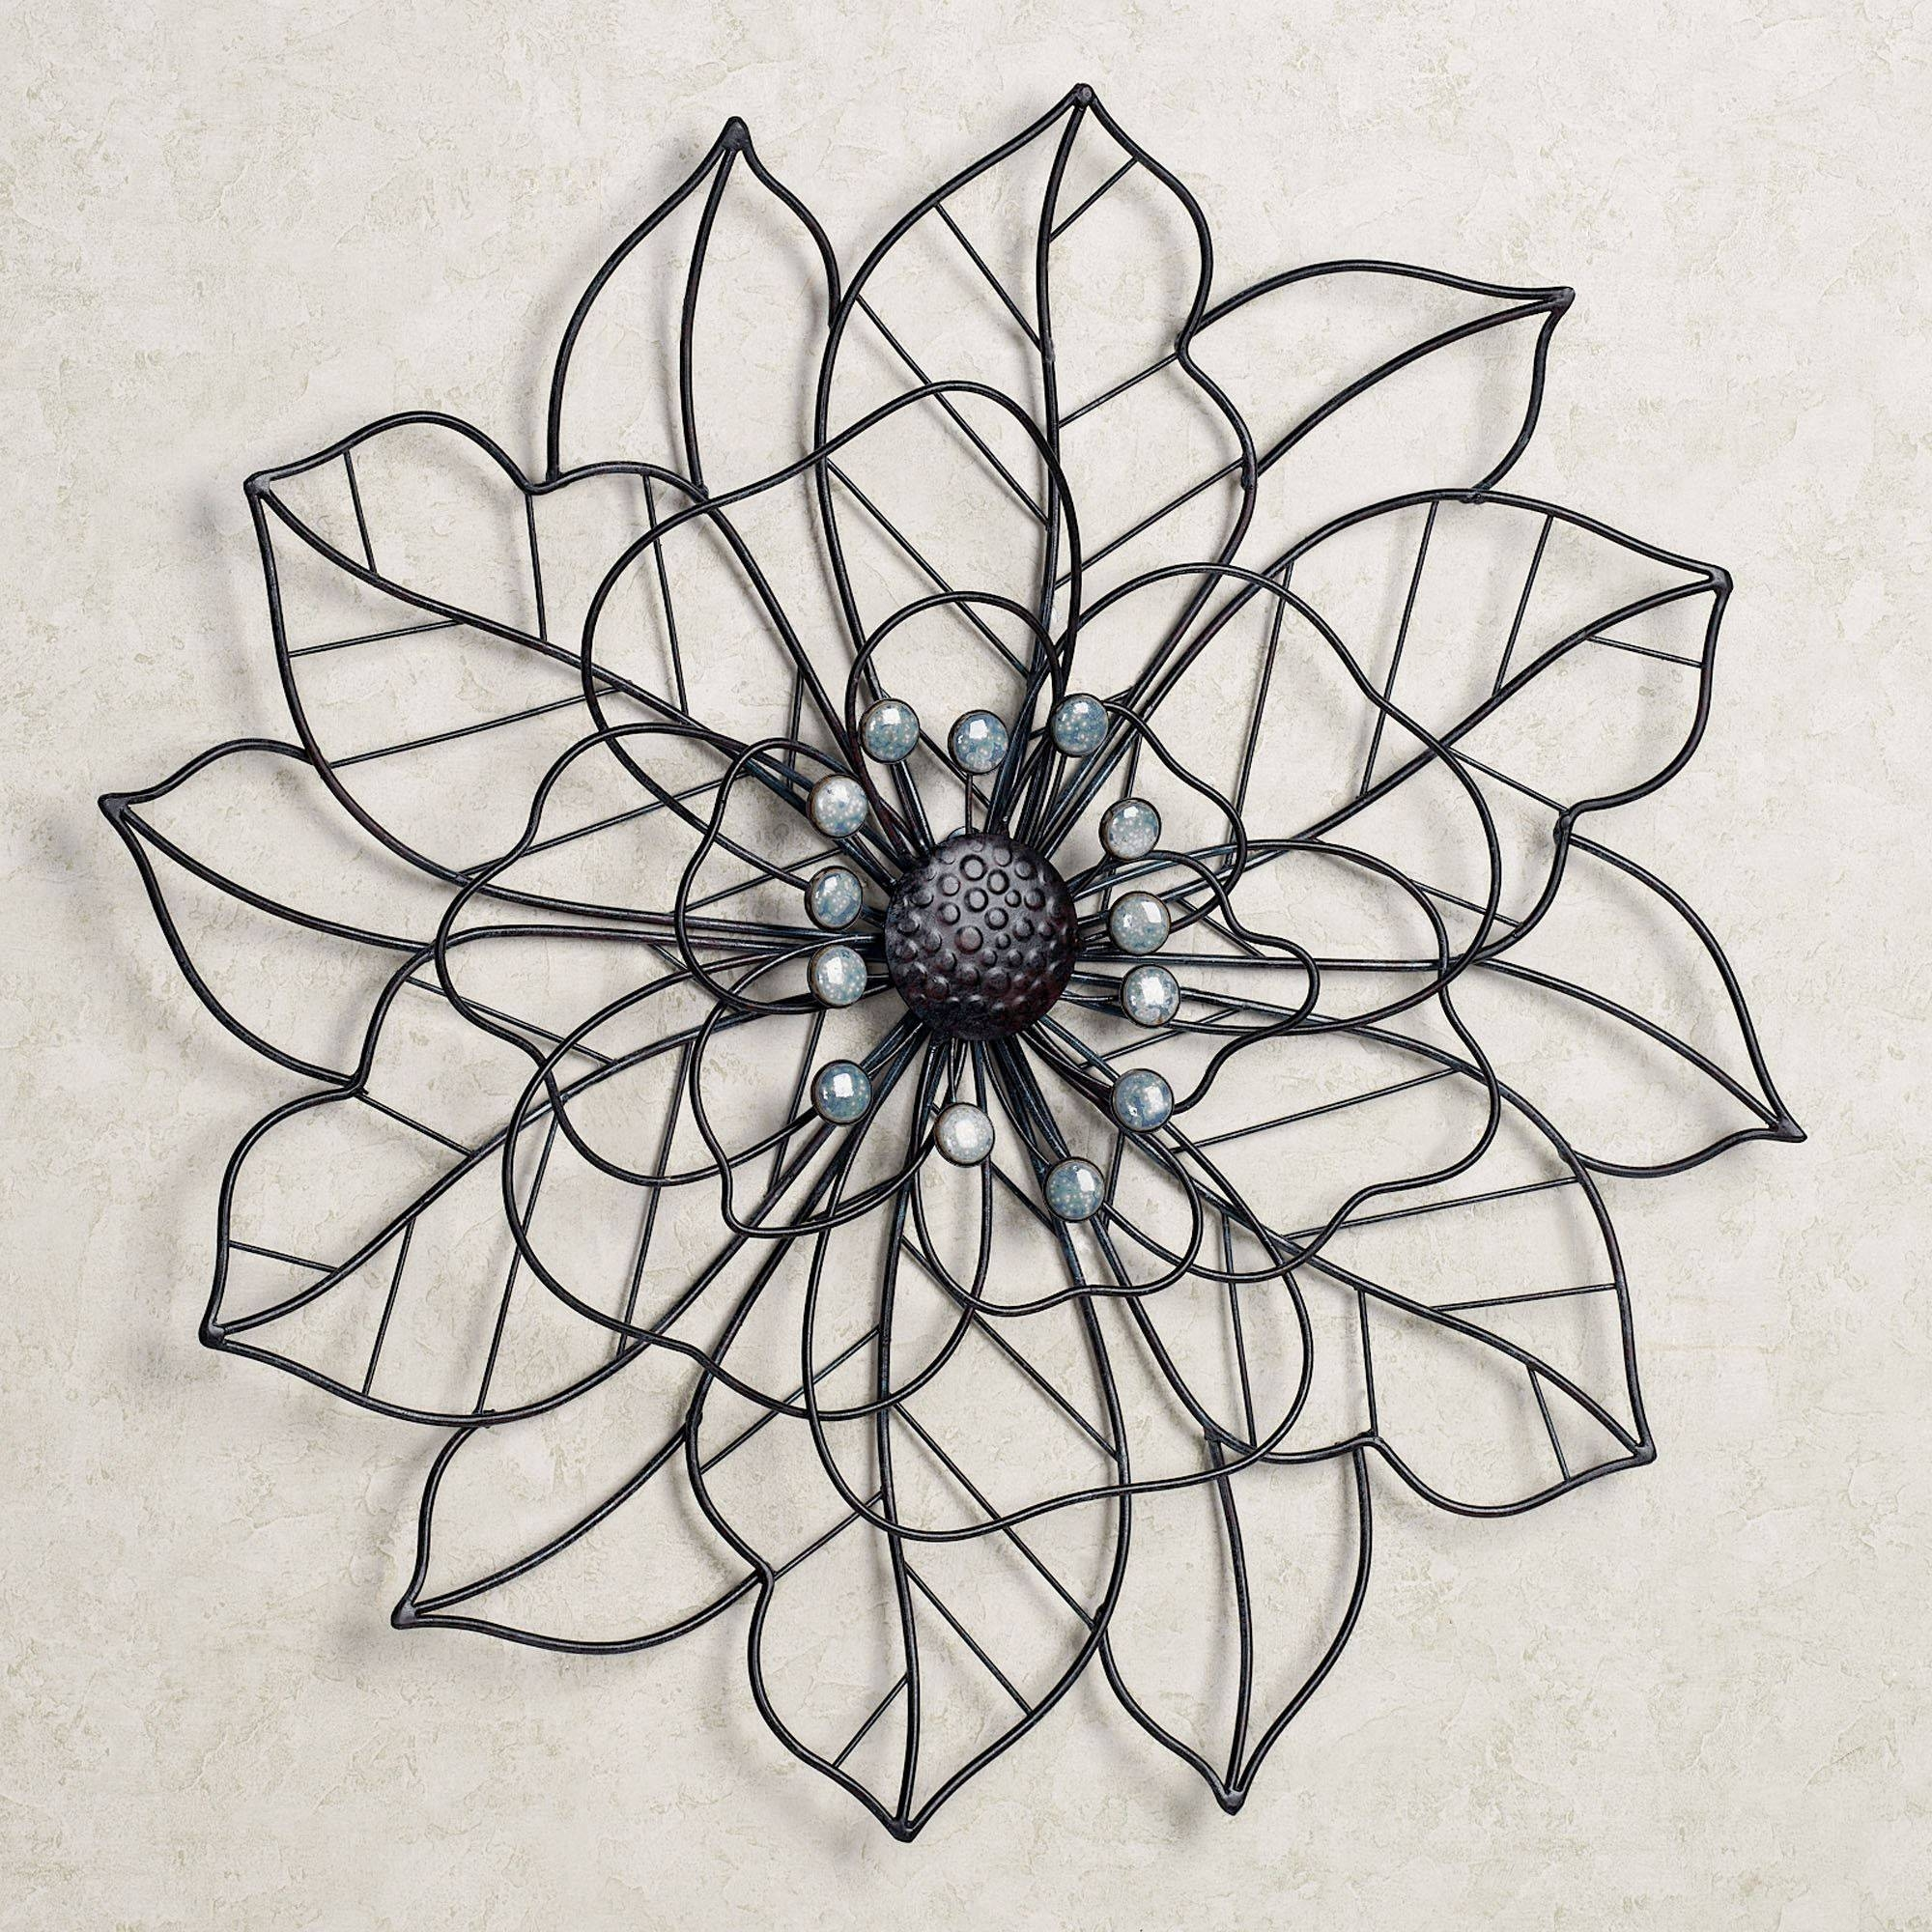 Beauty In Bloom Flower Blossom Metal Wall Art Inside Most Recent Flower Metal Wall Art Decor (View 12 of 20)